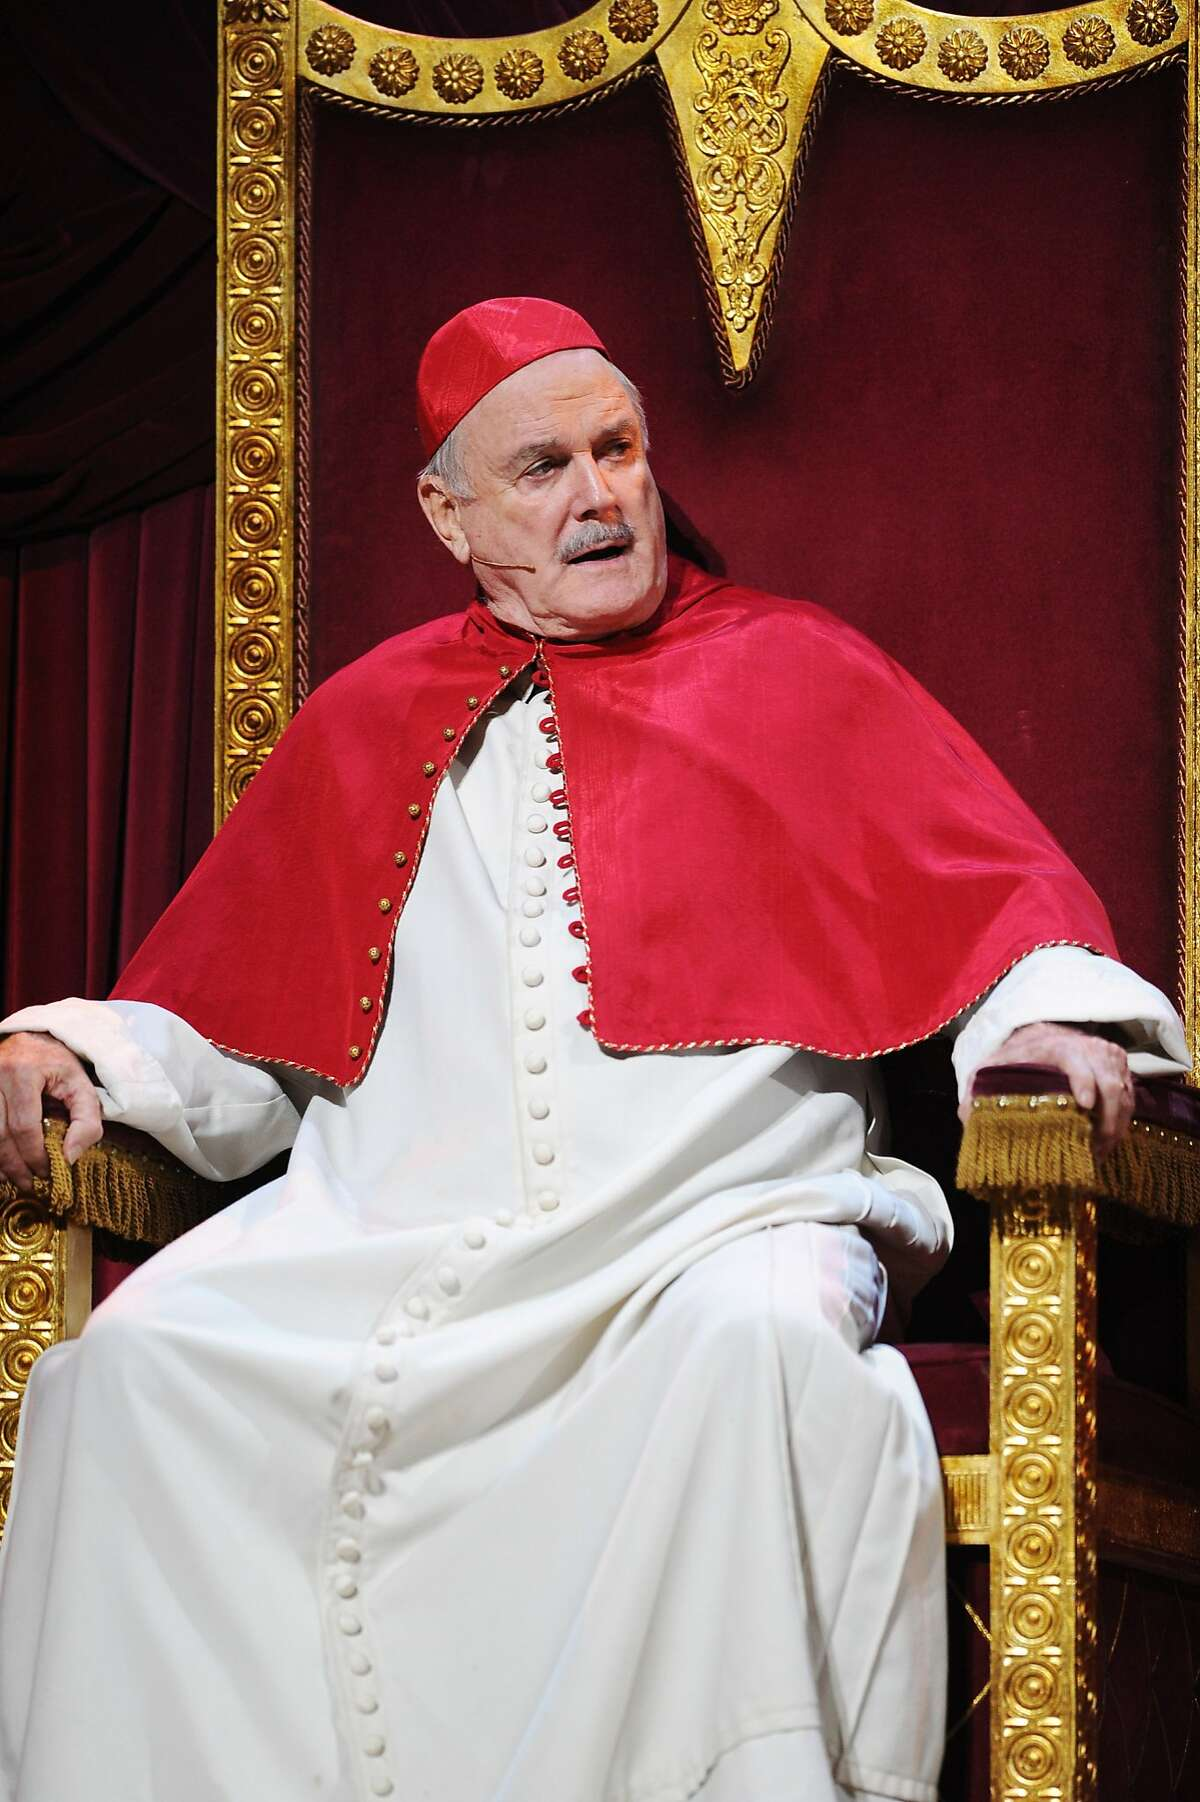 John Cleese performs on the closing night of 'Monty Python Live (Mostly)' at The O2 Arena on July 20, 2014 in London, England.